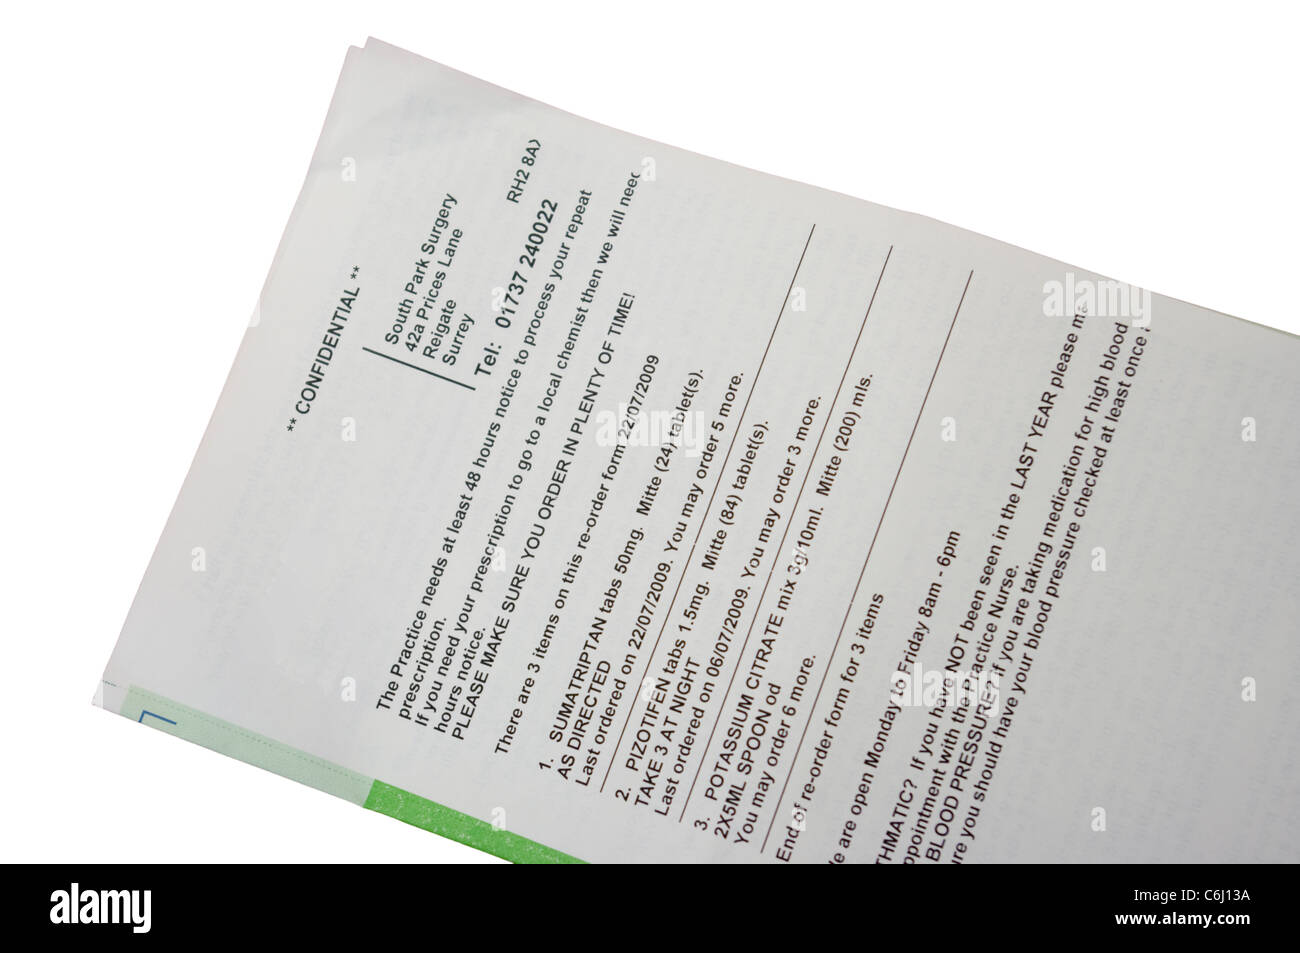 Repeat NHS National Health Service Prescription Form - Stock Image